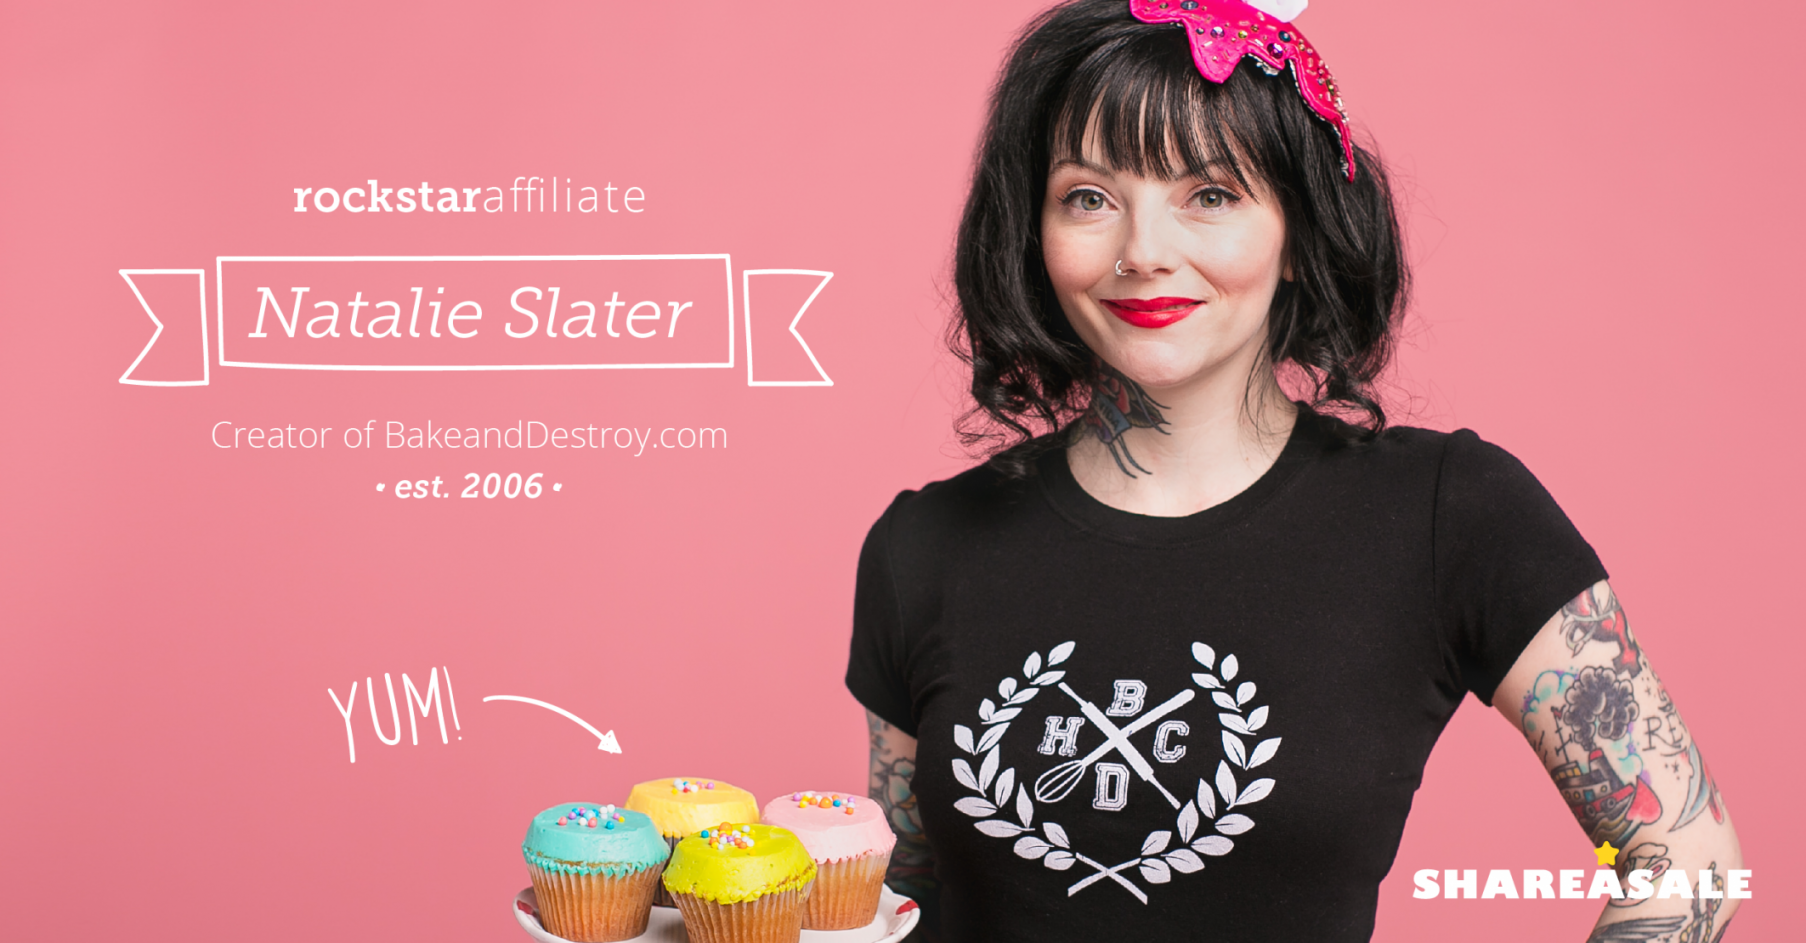 Rockstar Affiliate: Natalie Slater of BakeandDestroy.com - ShareASale Blog